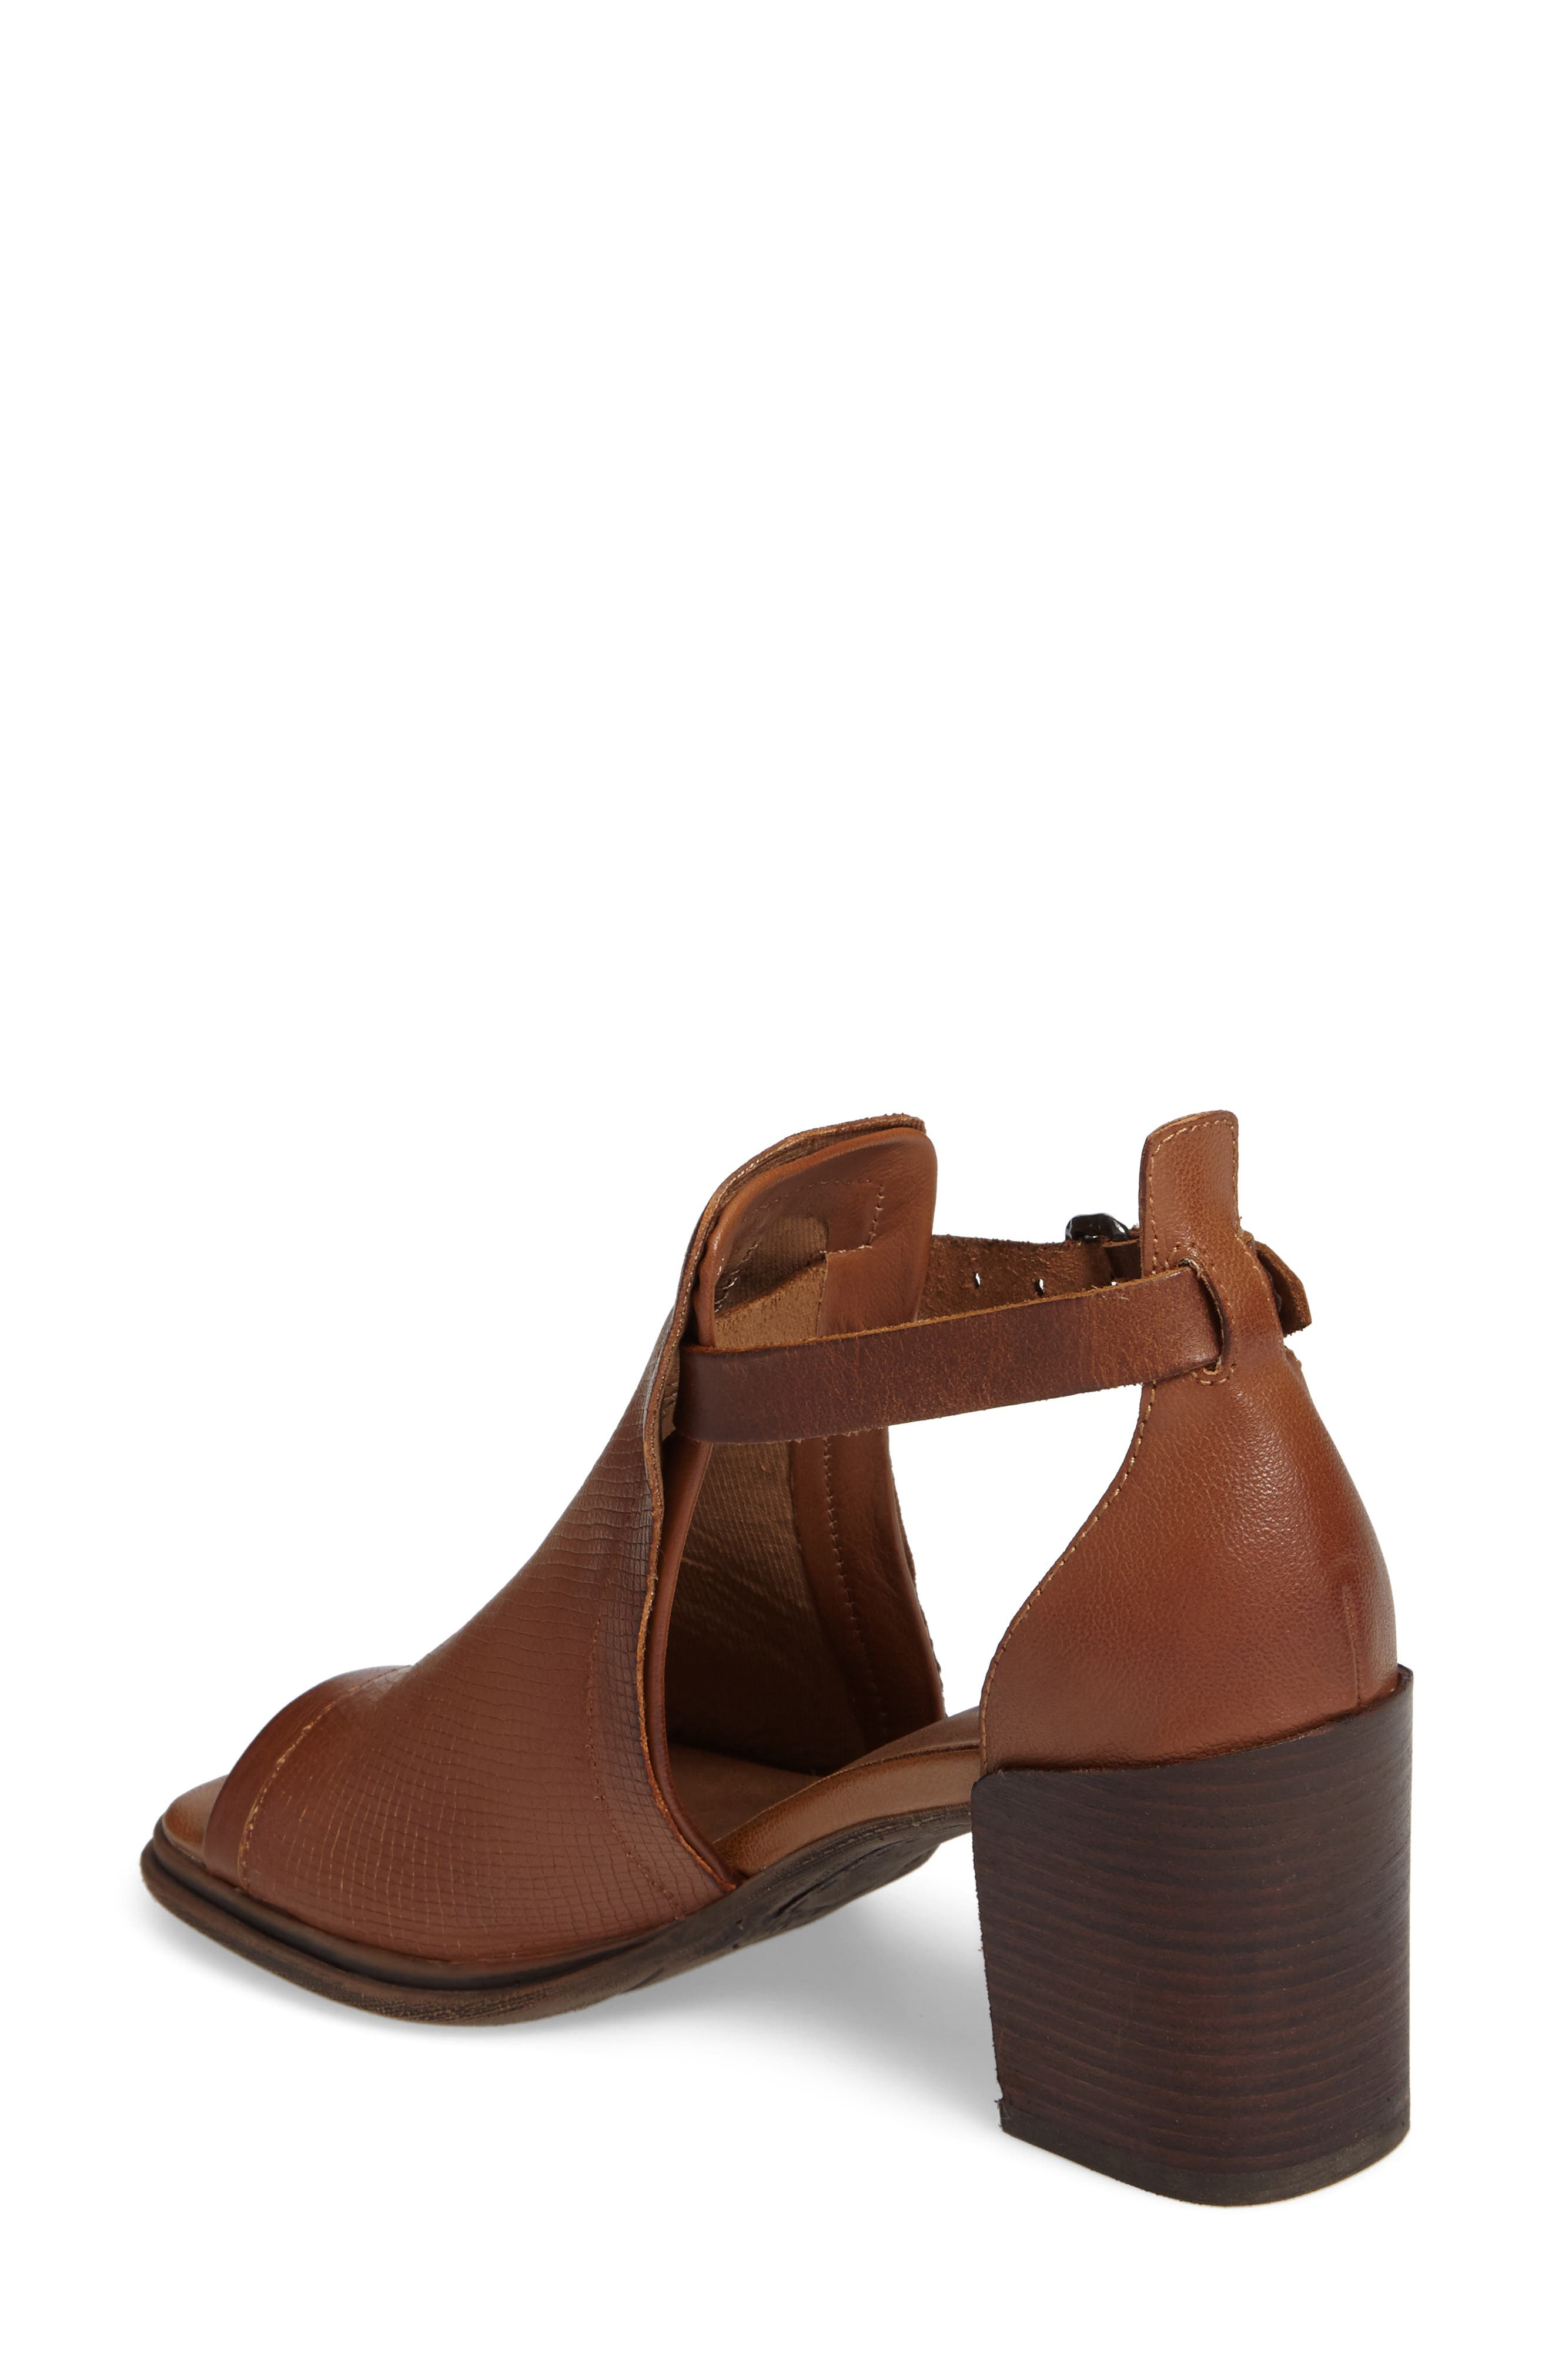 Metaphor Open Side Bootie,                             Alternate thumbnail 2, color,                             Medium Brown Leather